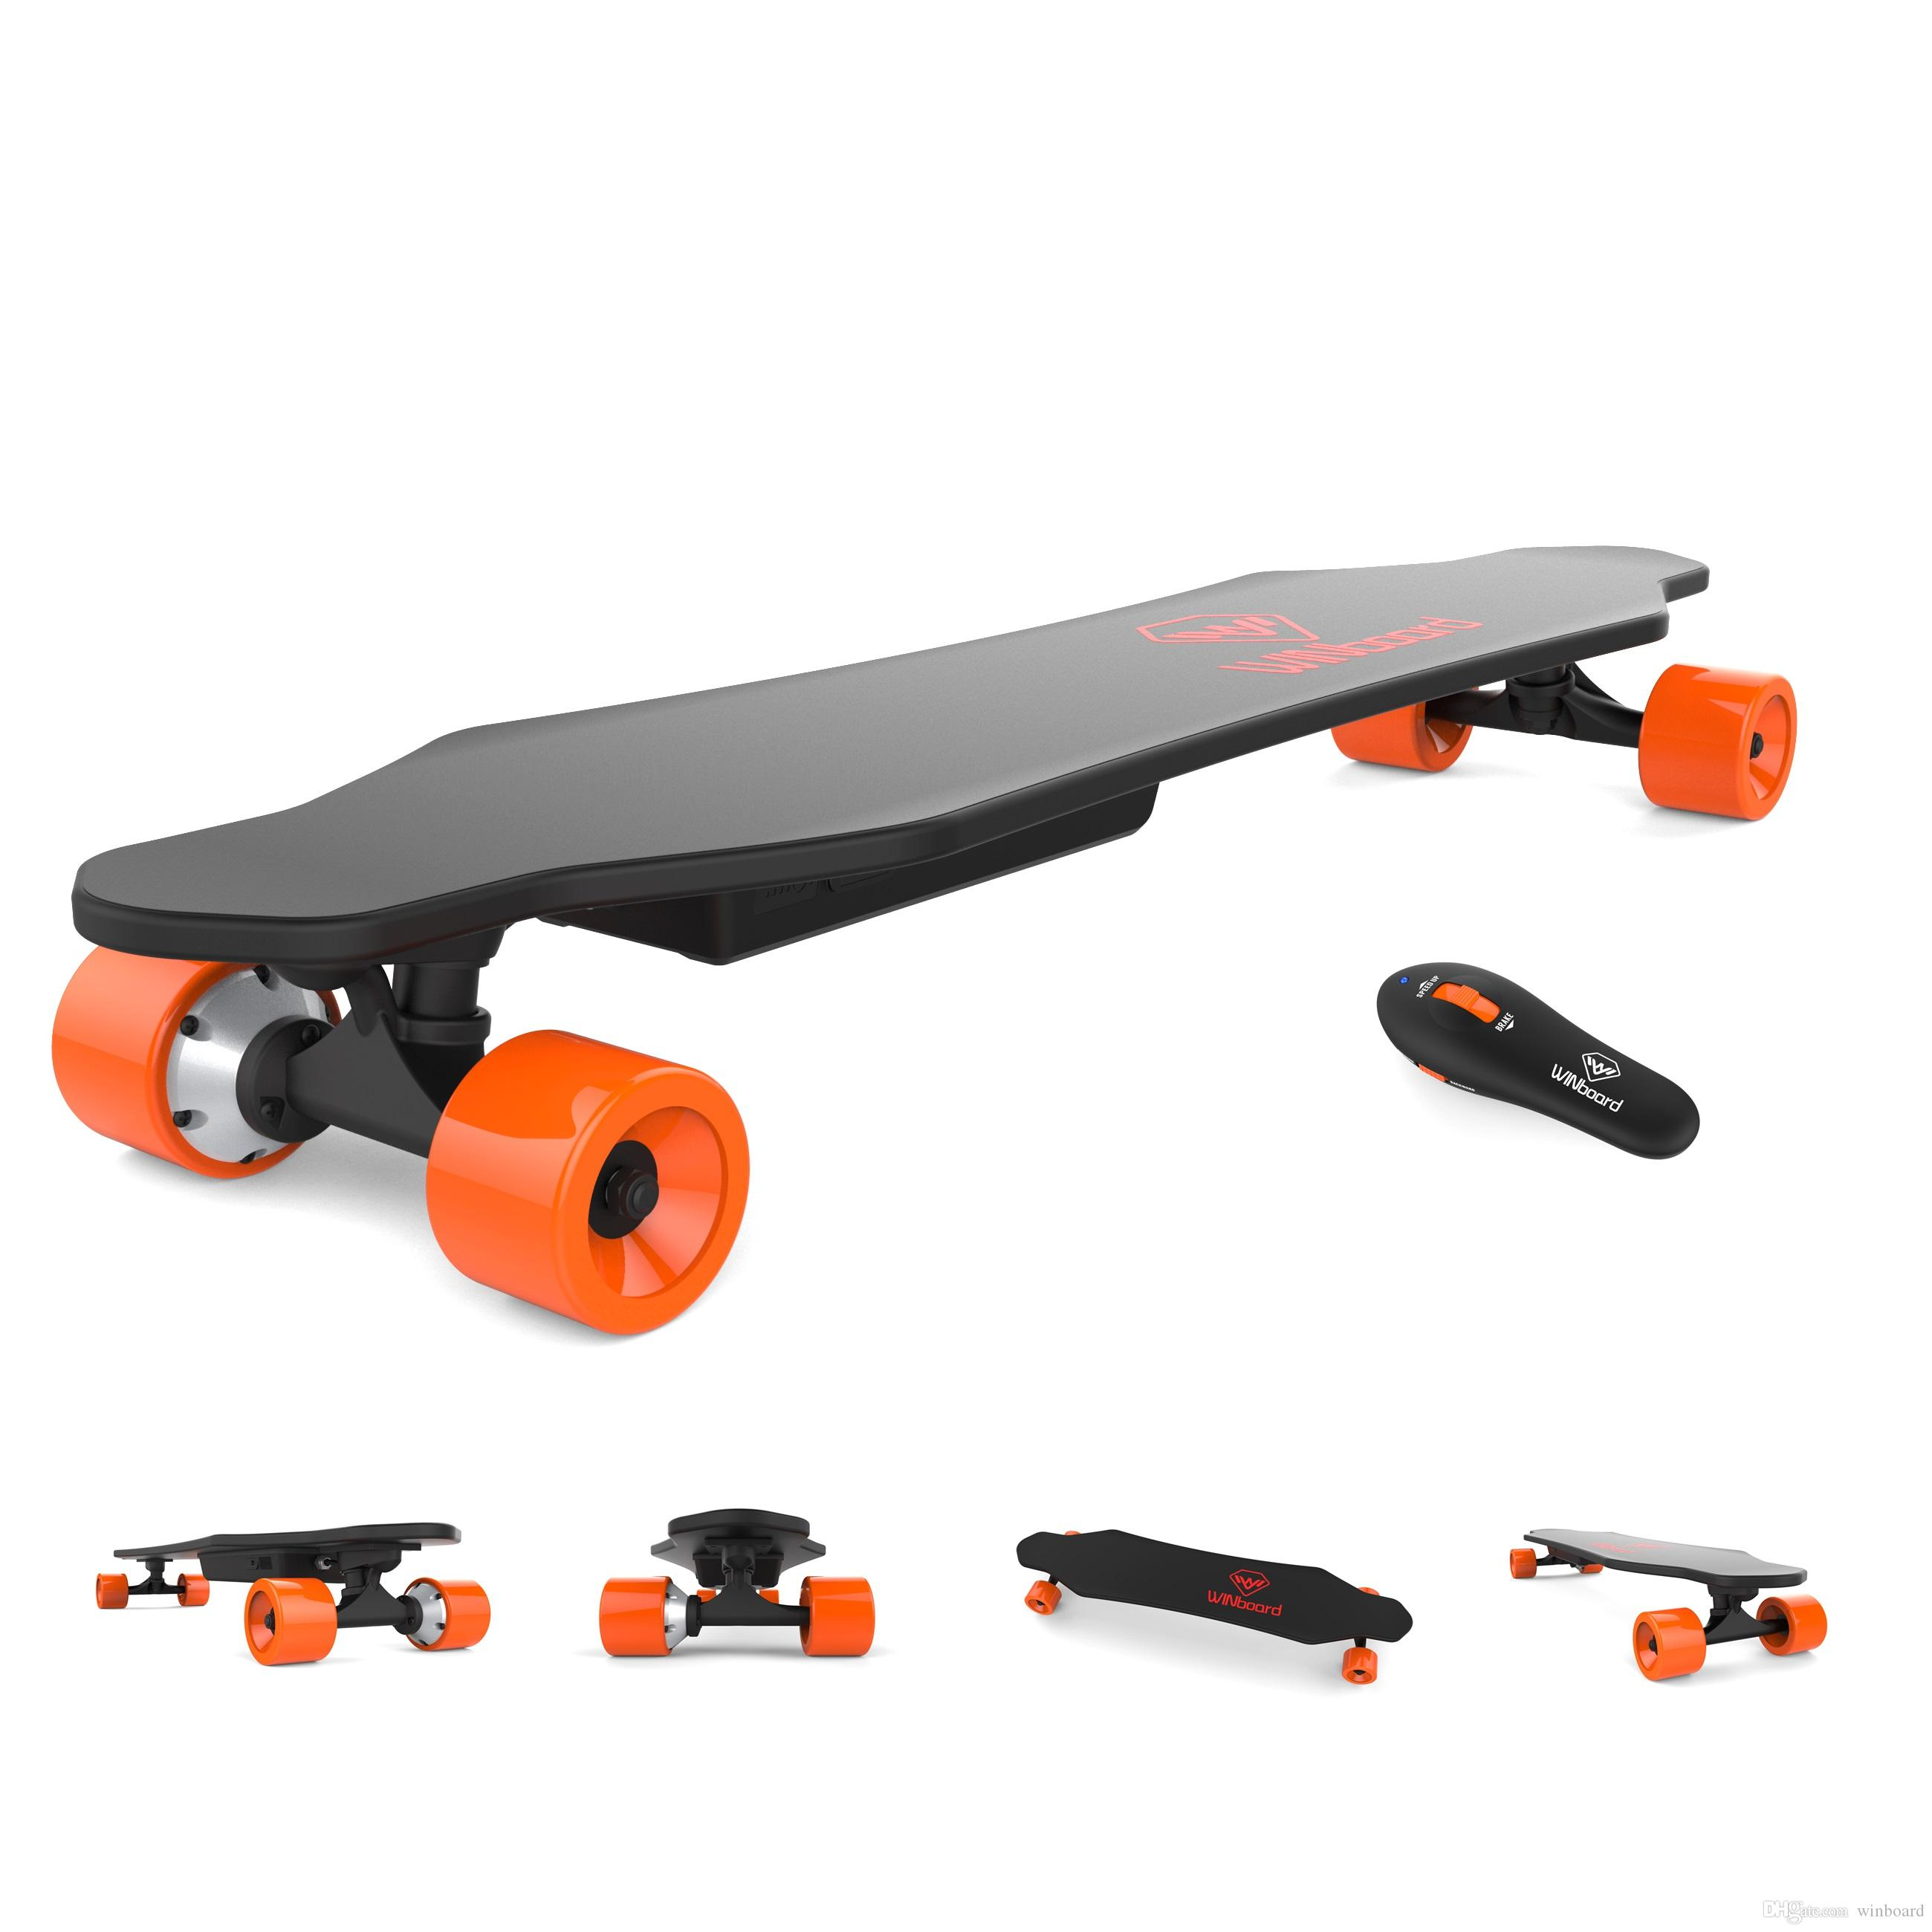 Remote Control Skateboard >> 2019 Winboard W1 Wireless Remote Control 4 Wheels Boosted Board